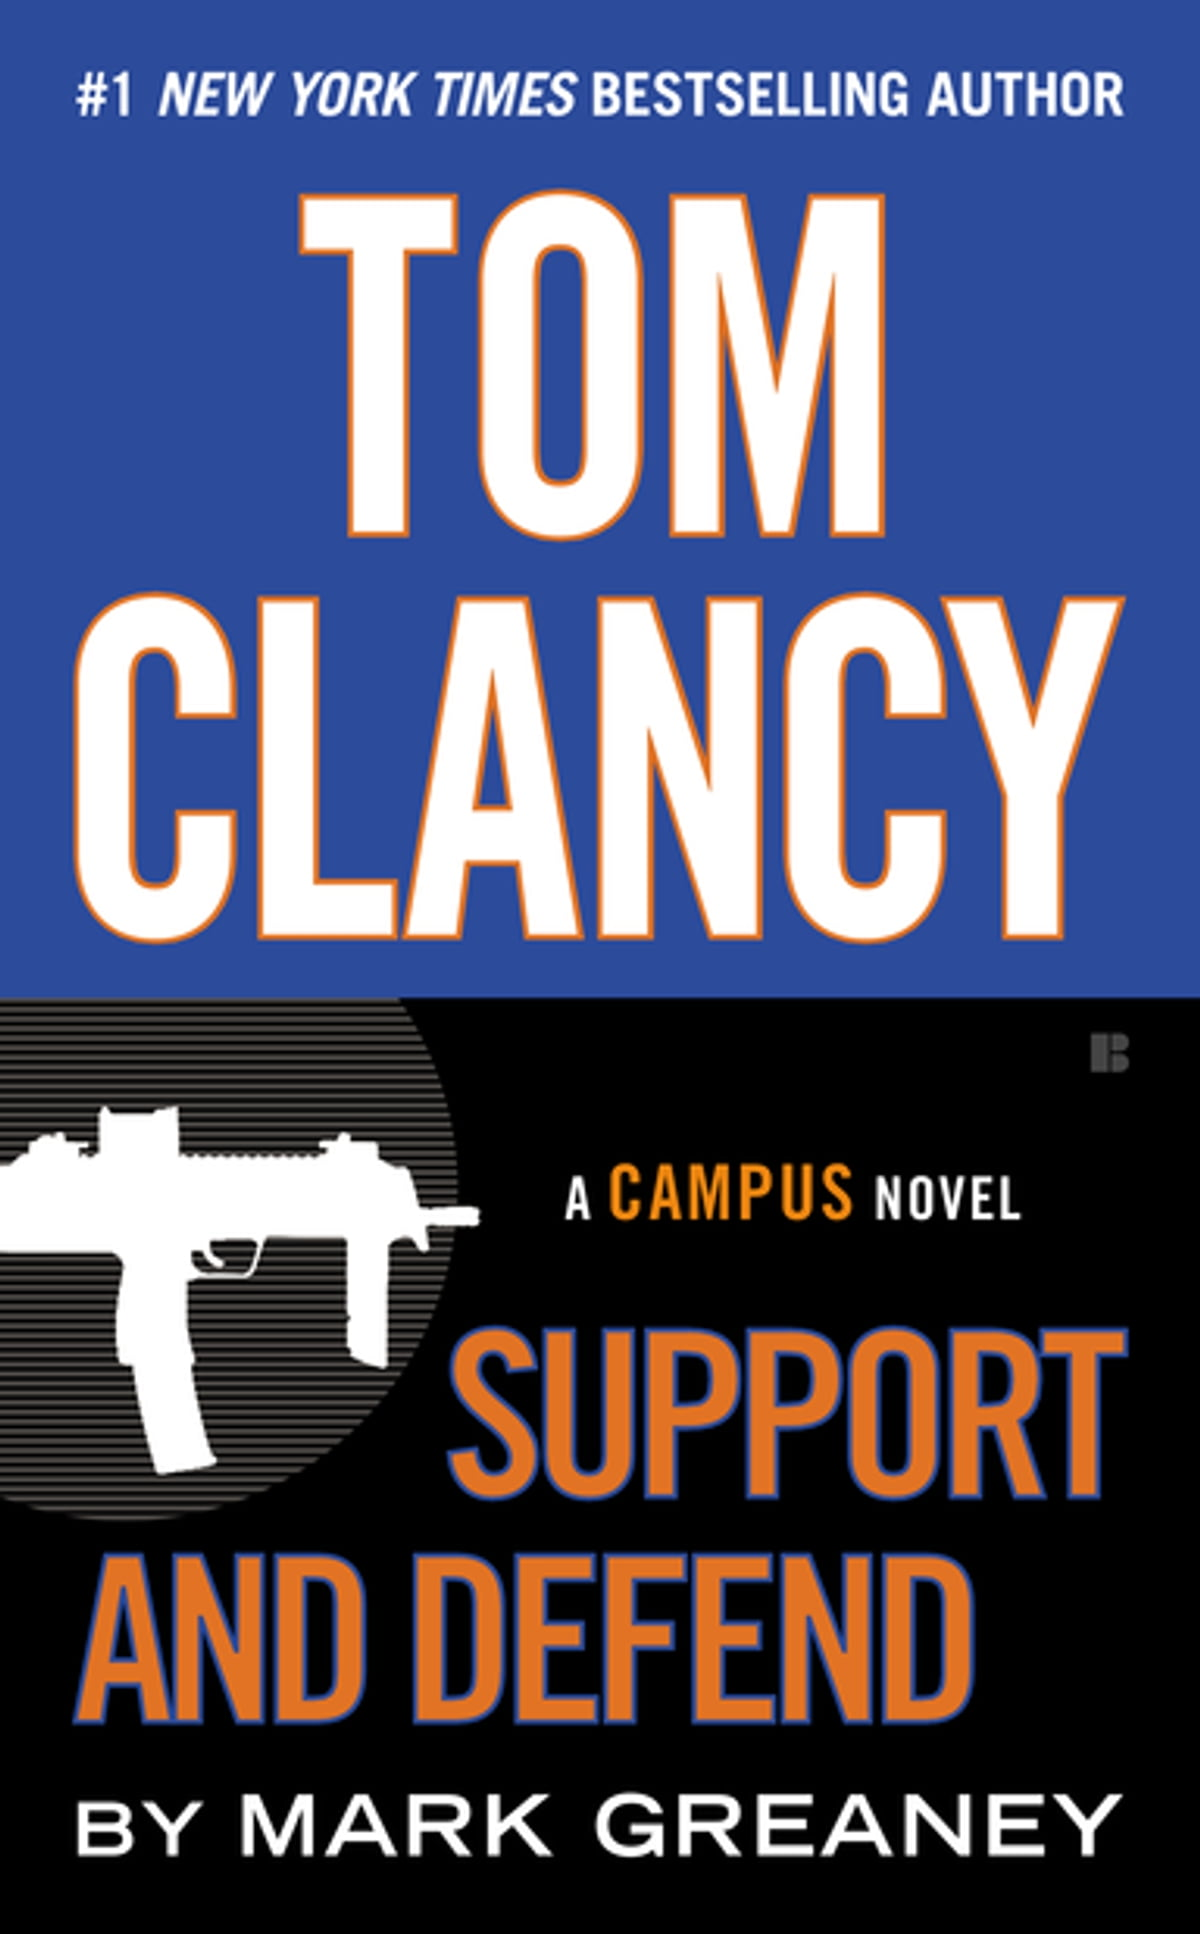 Tom Clancy Support And Defend Ebook By Mark Greaney  9780698185357  Kobo